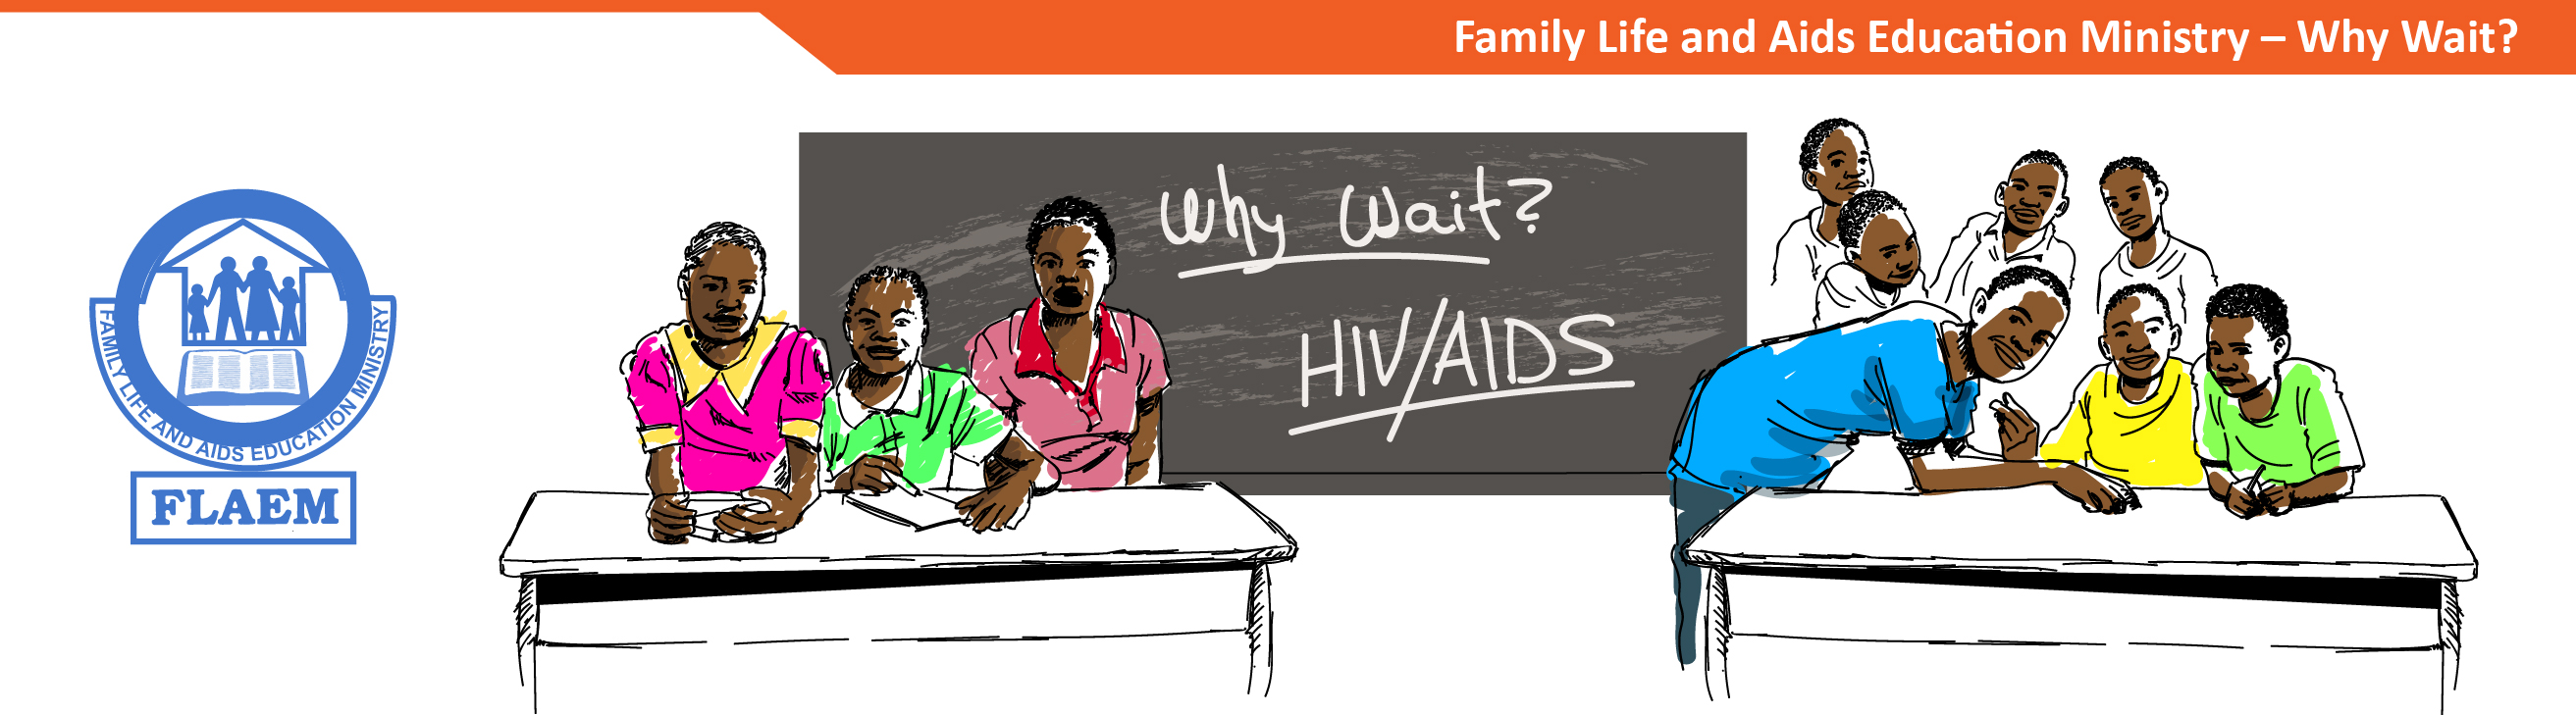 Family Life and Aids Education Ministry - Why Wait?